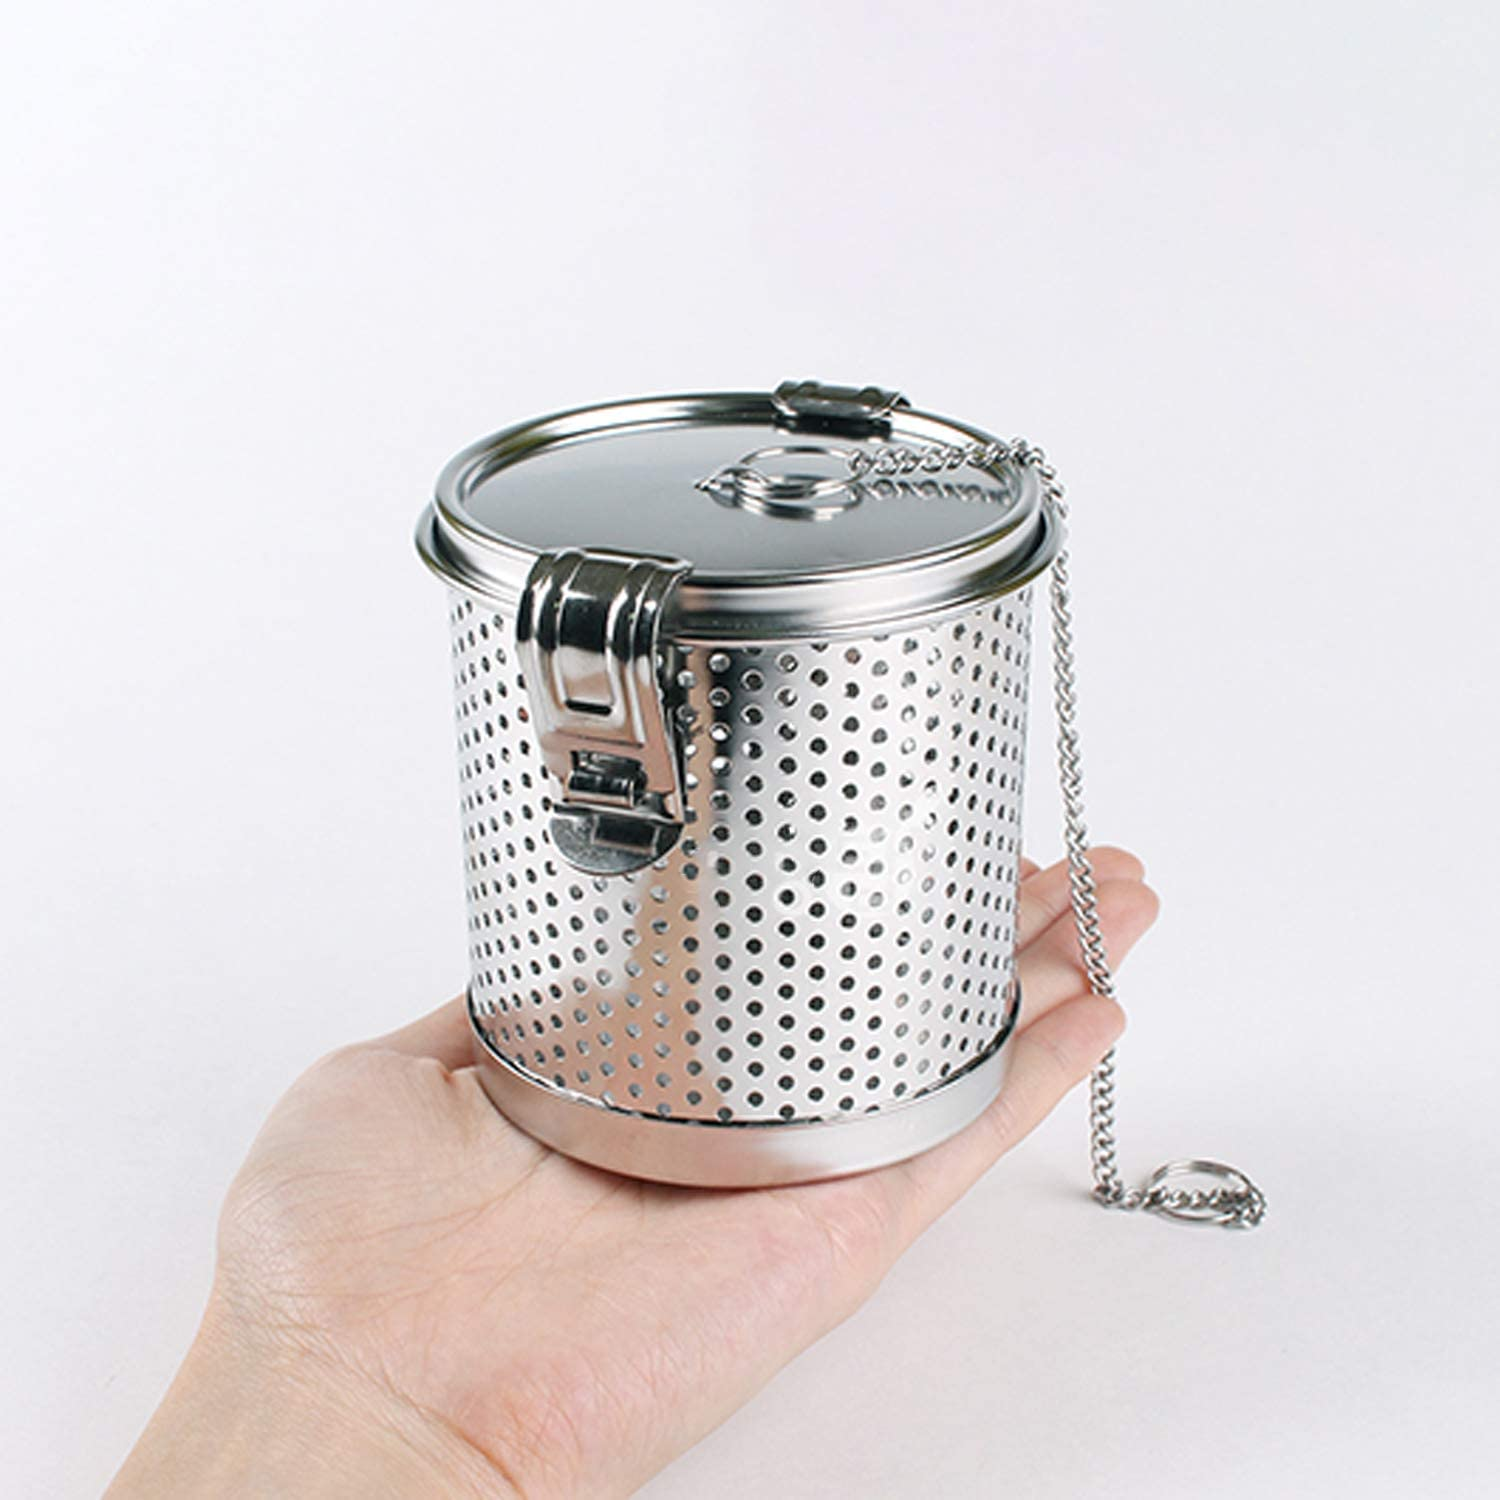 7oz Spices /& Seasonings Cookware for Boiling Tea Ball Cooking Mesh Strainers Threaded Connection Spice Infuser Stainless Steel with Extended Chain Hook to Brew Loose Leaf Tea